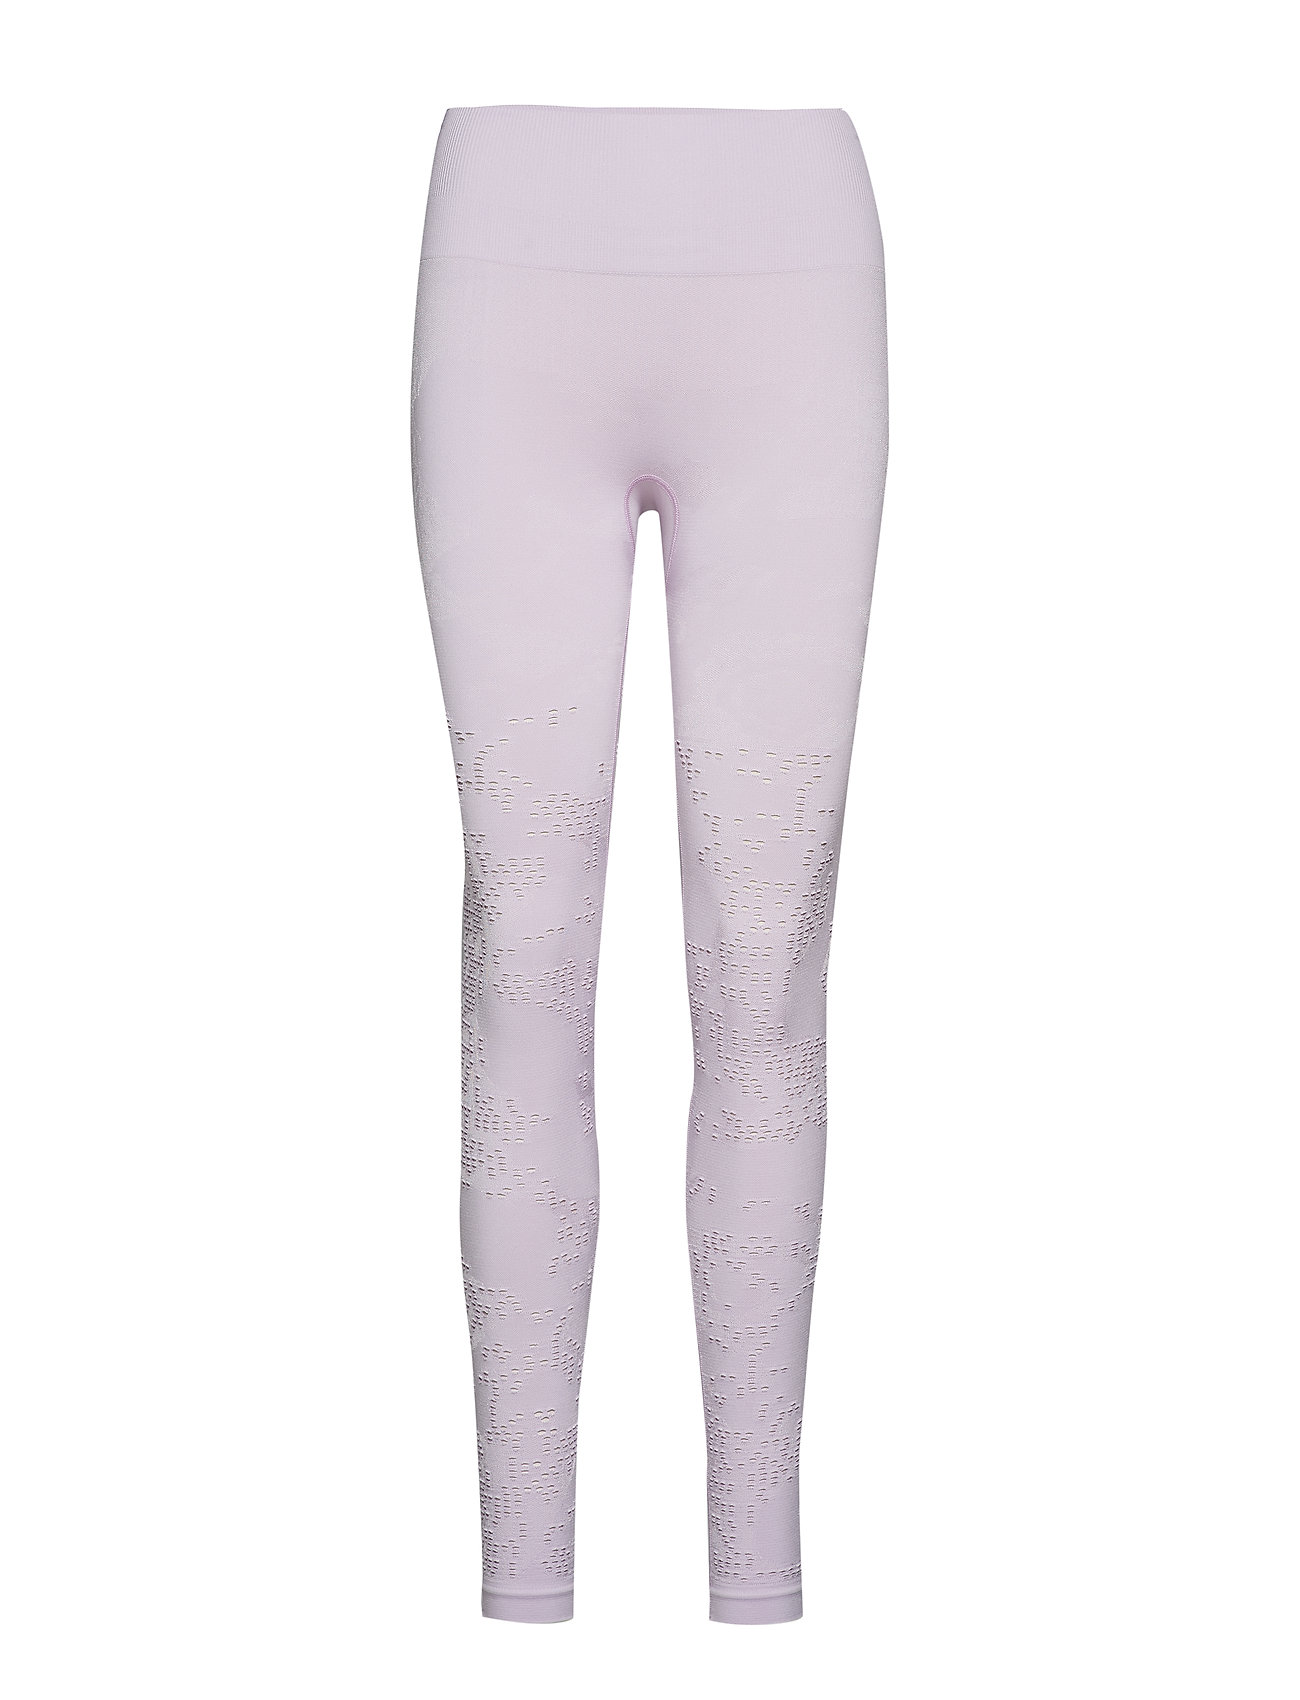 Casall Seamless Skin Tights - LAVENDER SPA